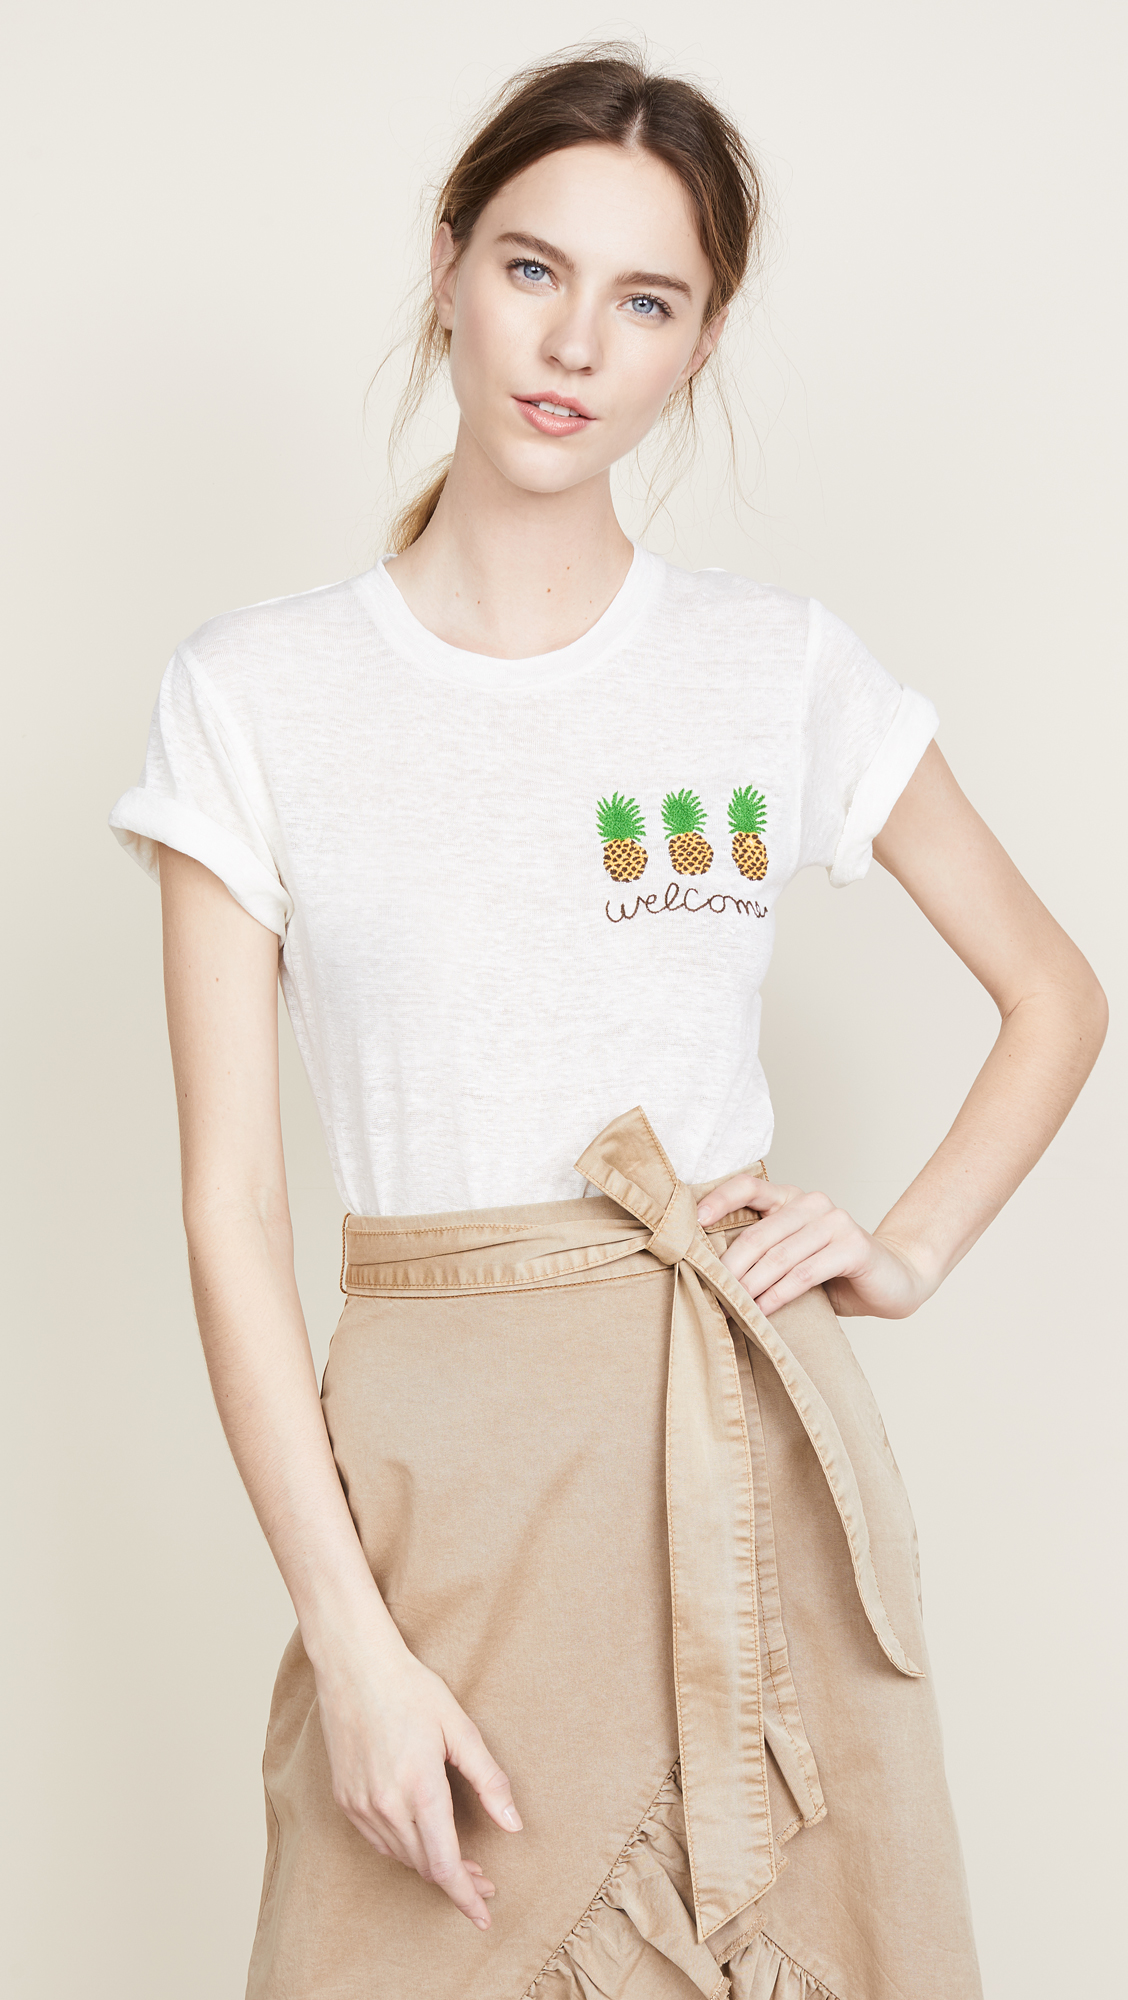 https://www.shopbop.com/welcome-pinaeappes-tee-banner-day/vp/v=1/1545459124.htm?fm=search-viewall-shopbysize&os=false